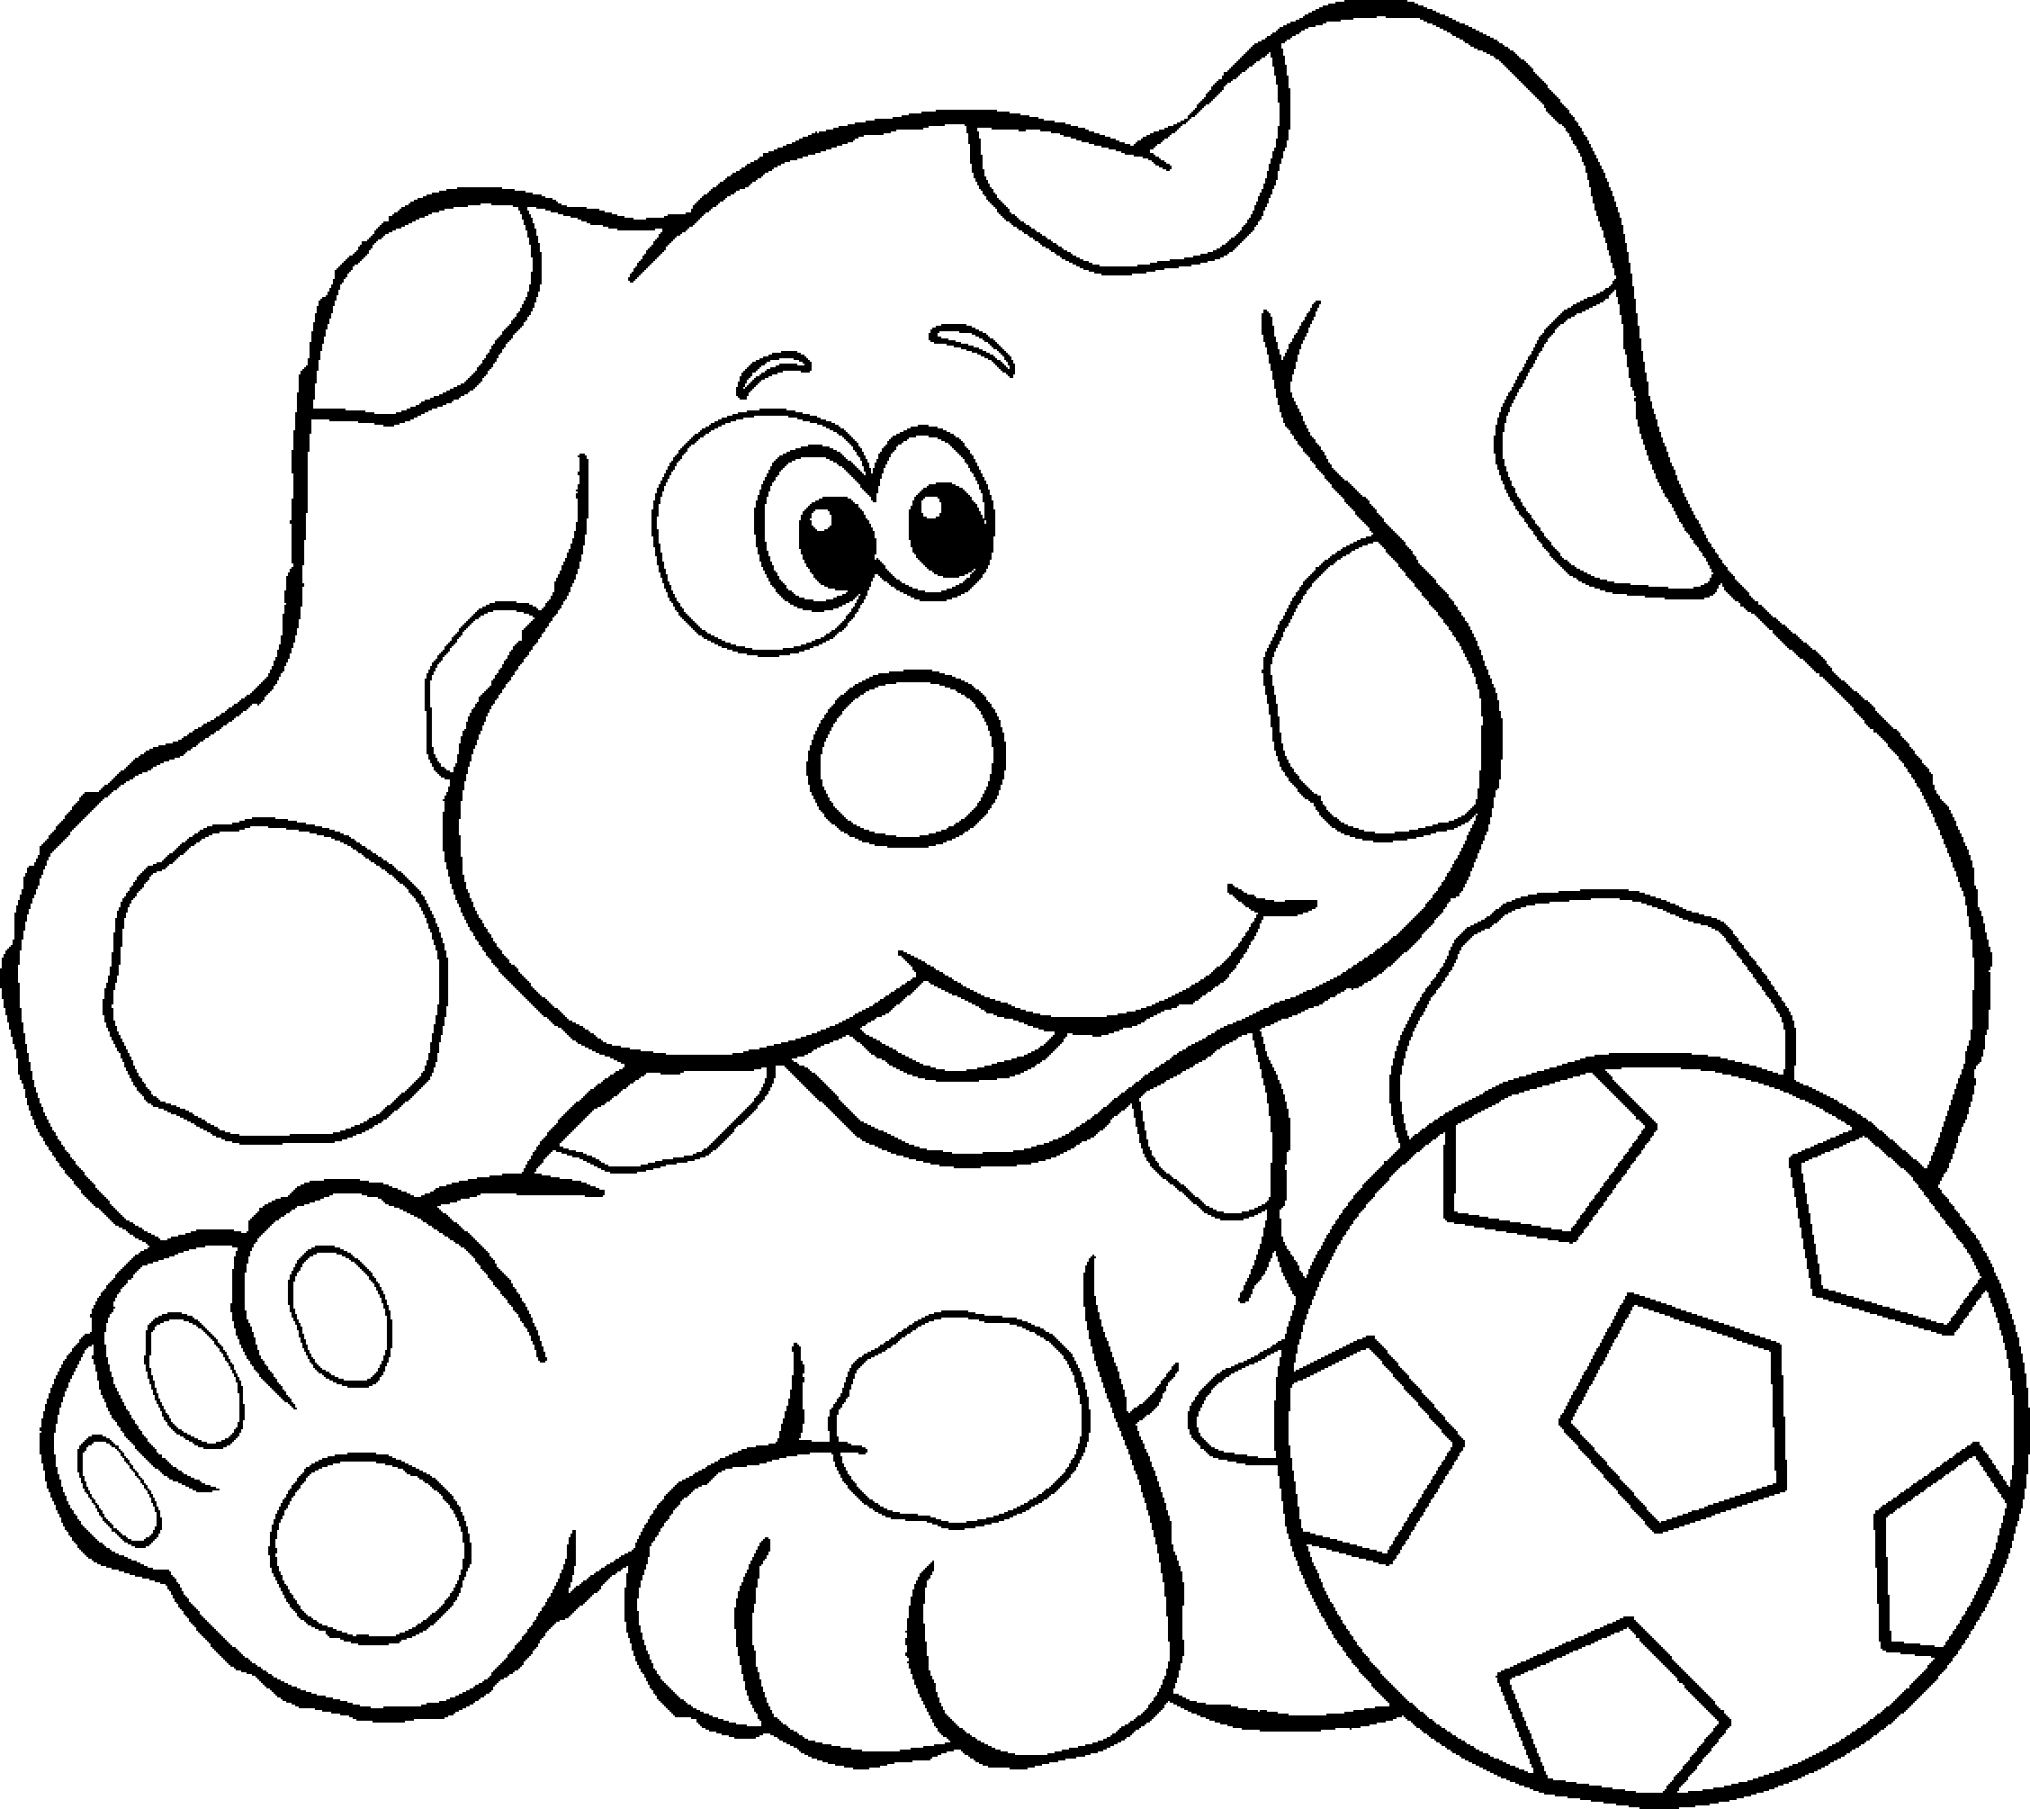 Coloring book nick jr - Blues Clues Coloring Page Cute Printable Download Coloring Pages Download Image Color Book Nick Jr